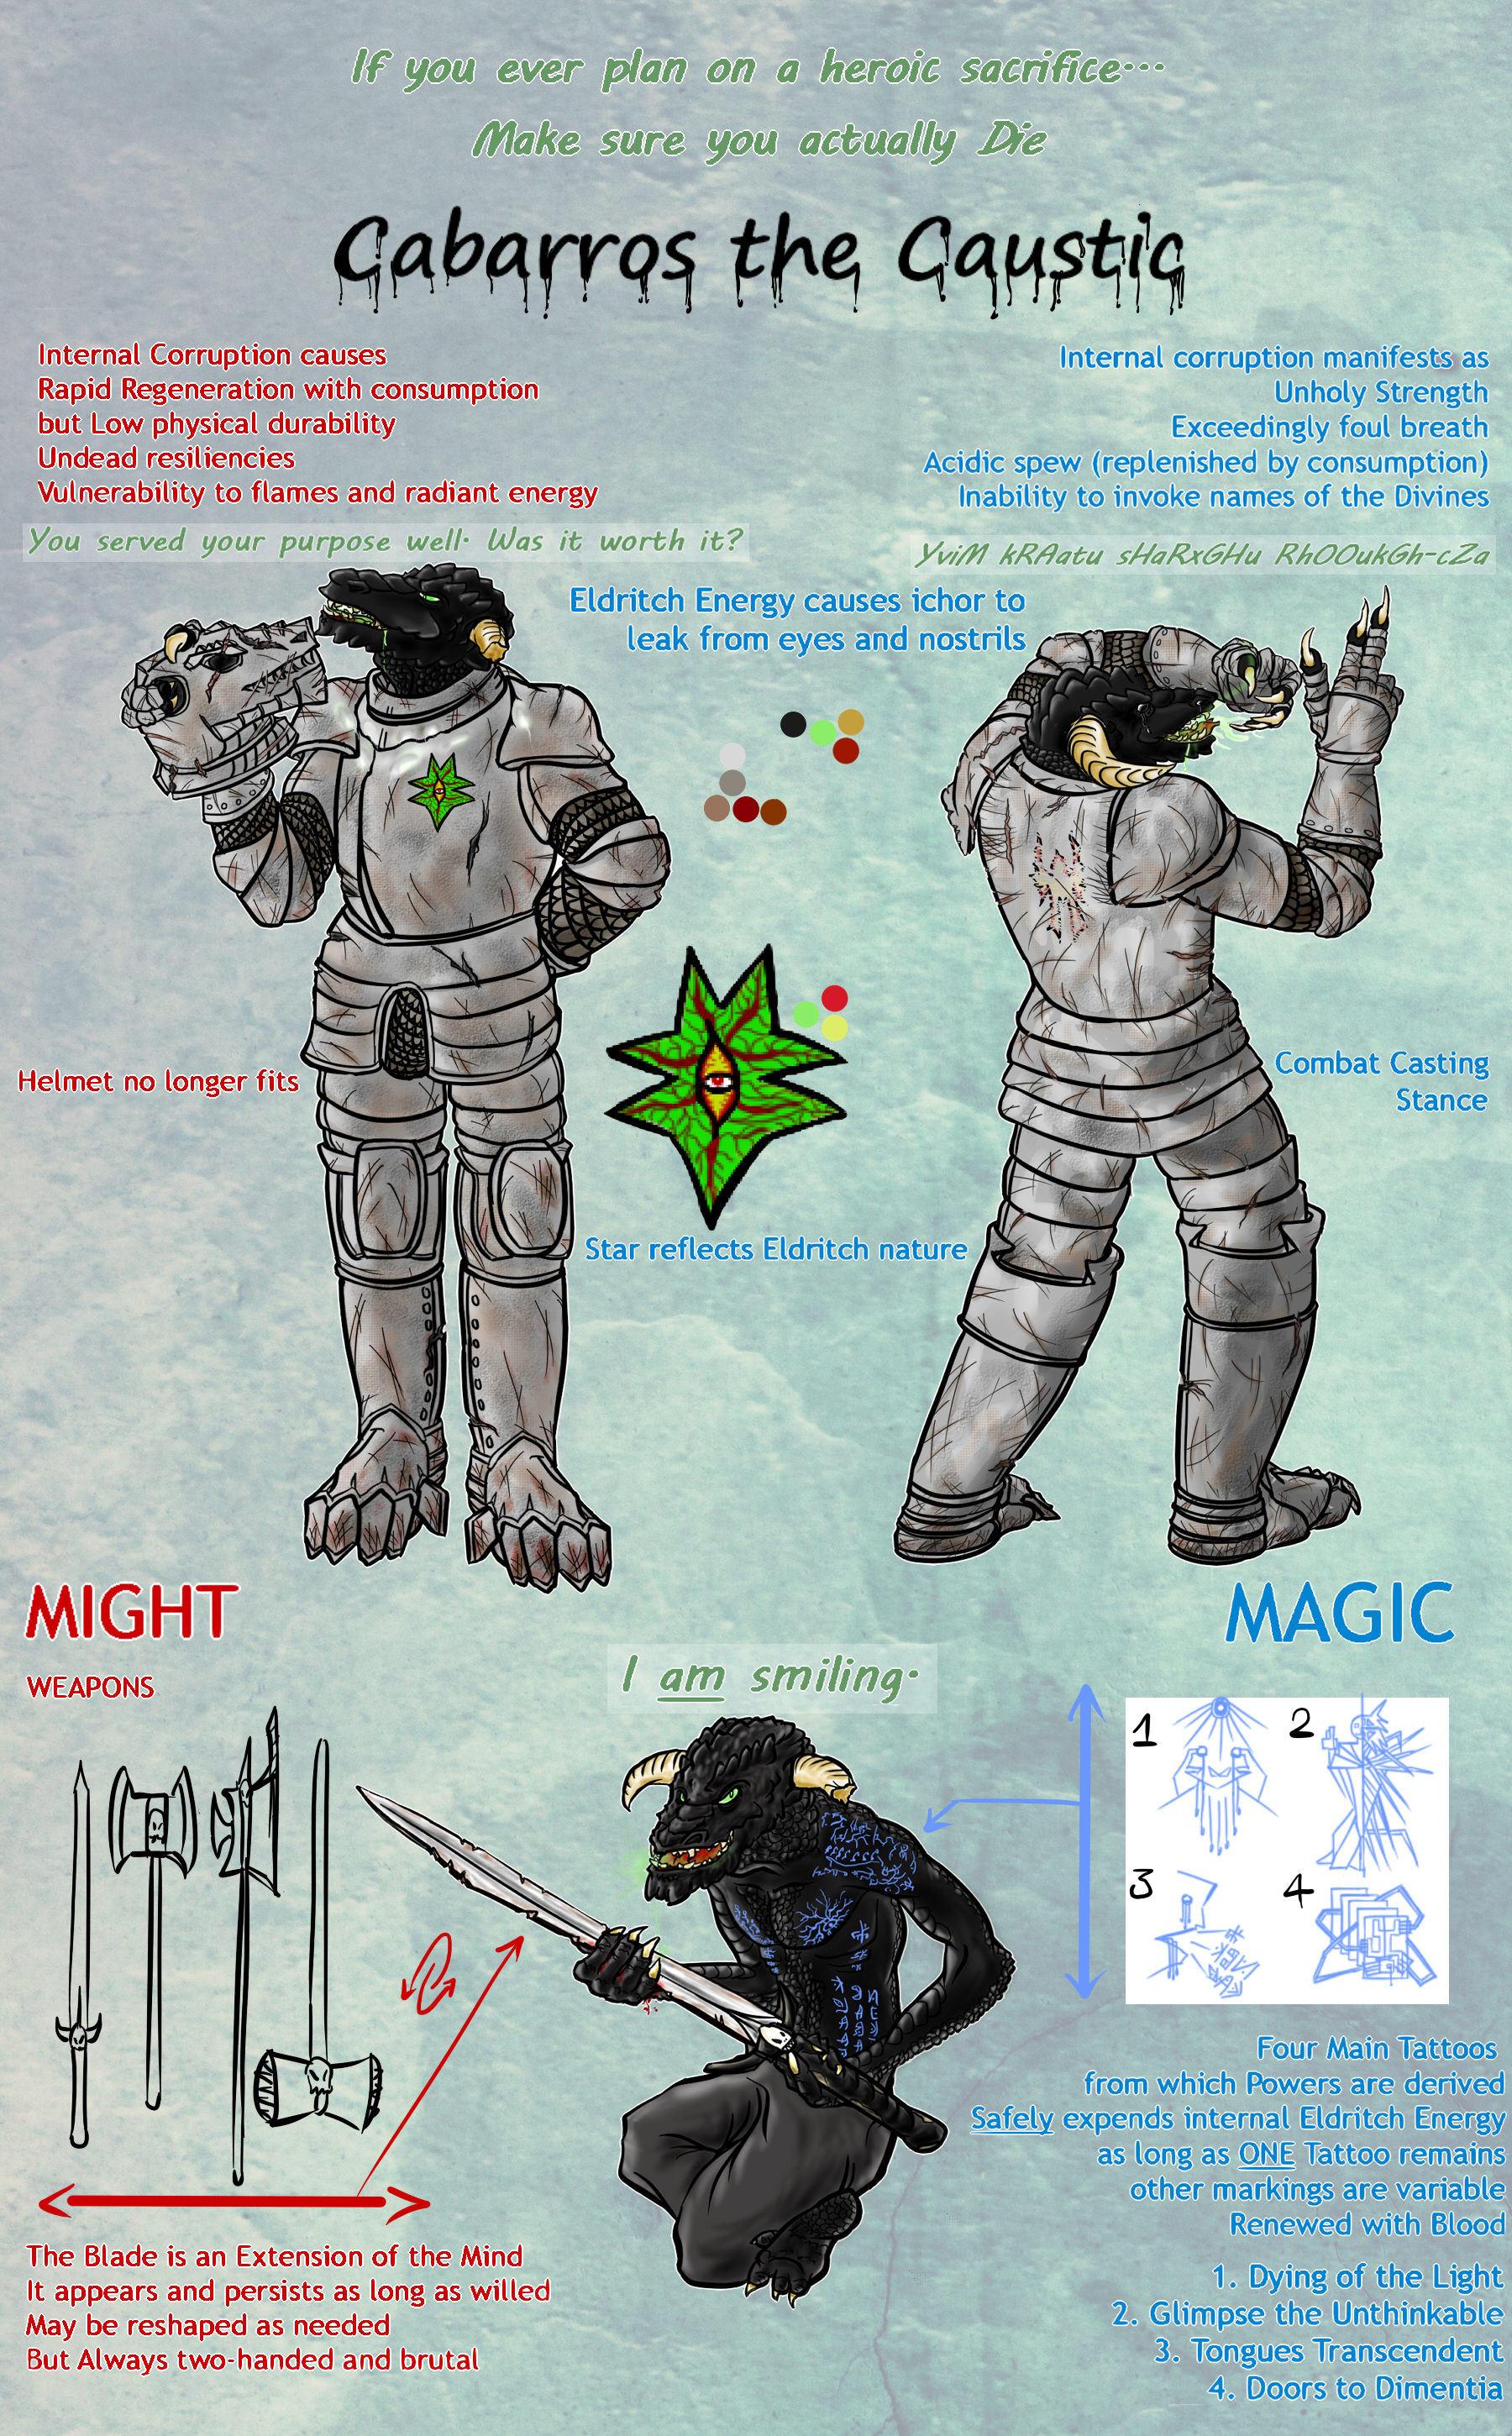 Ref Sheet: Cabarros the Caustic